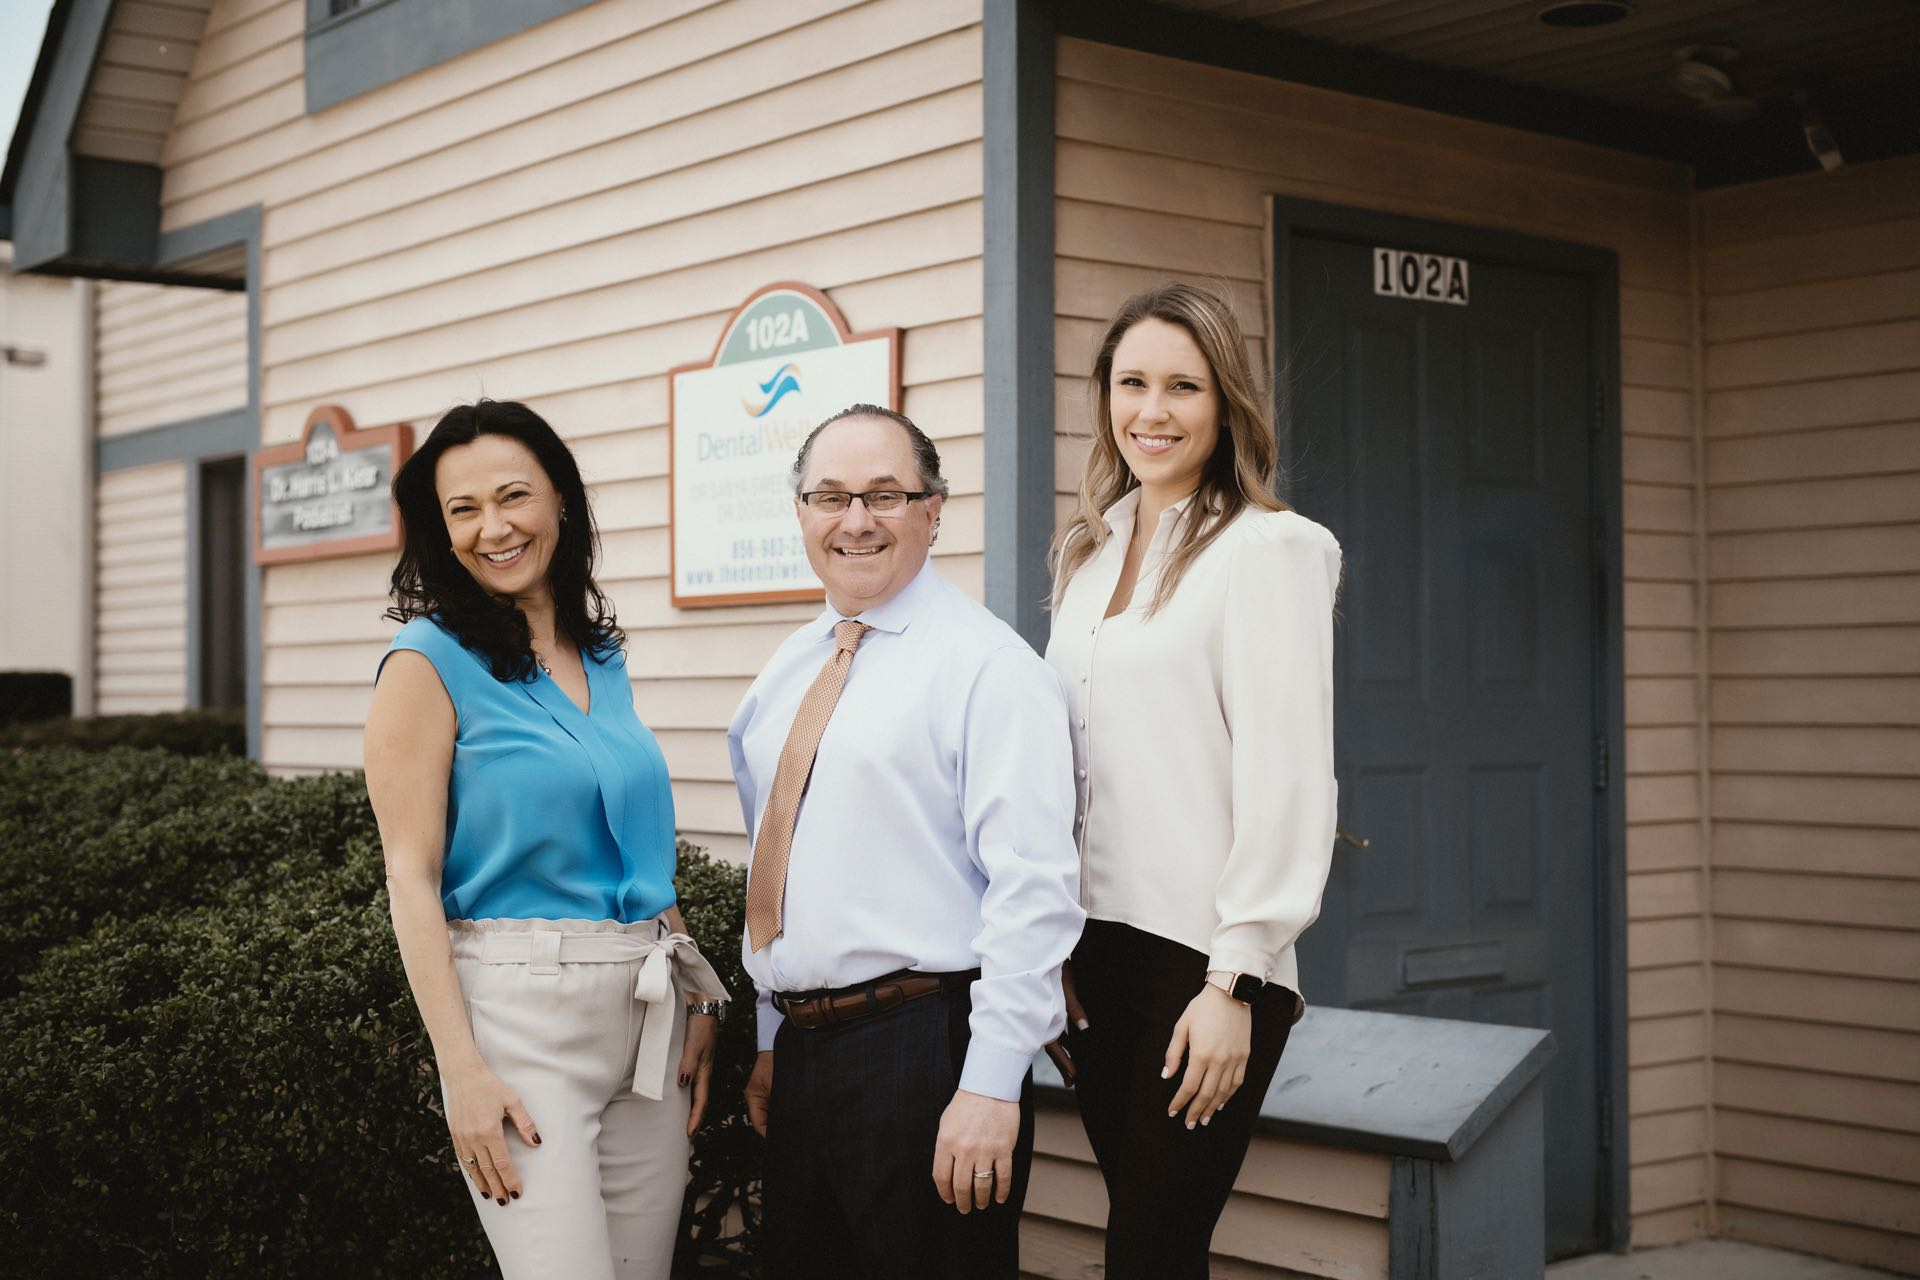 Photo of the dentists at Dental Wellness in Riverton and Marlton New Jersey